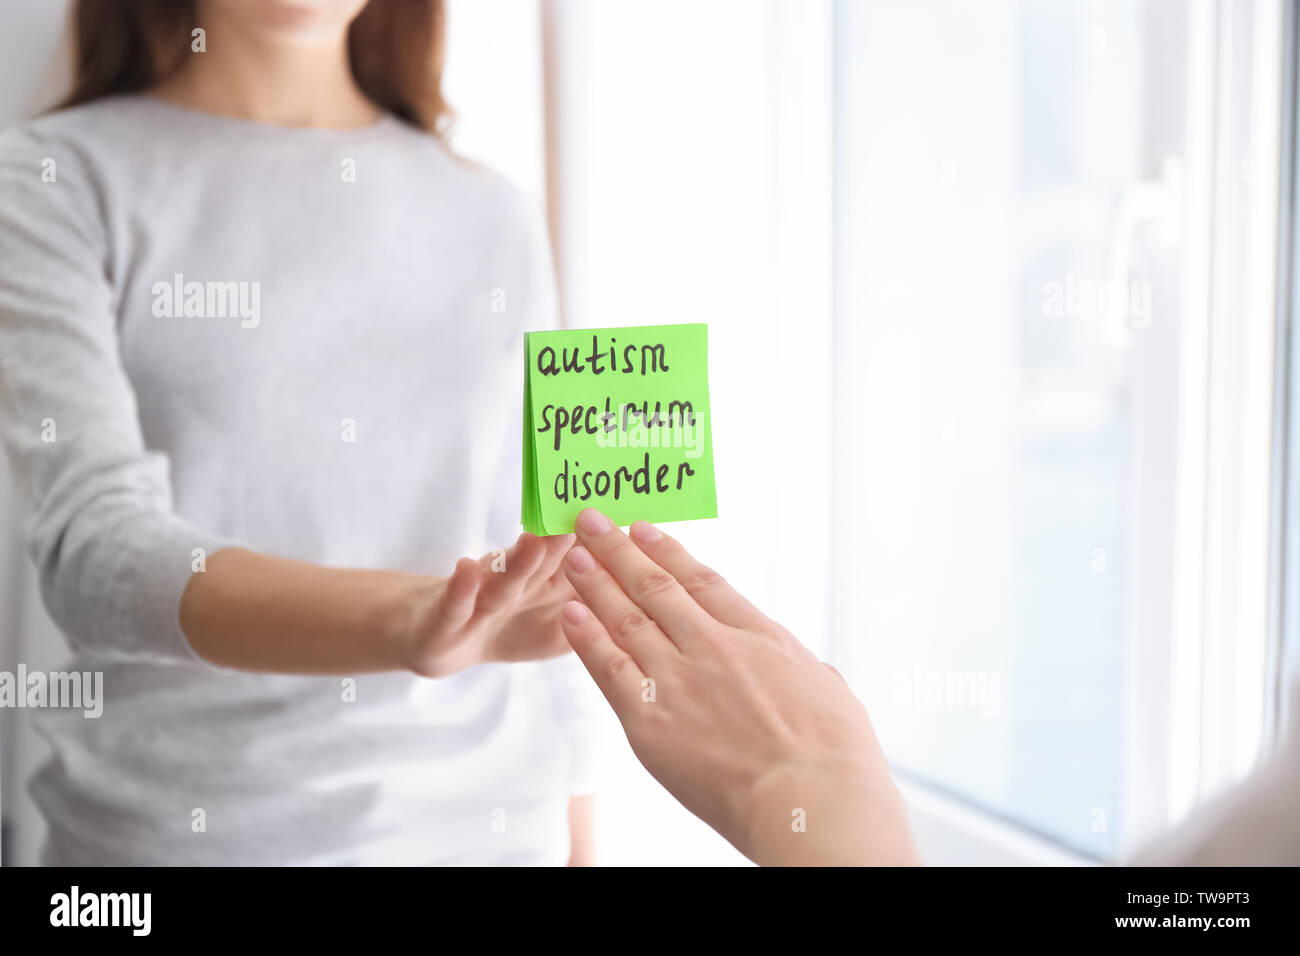 Woman sticking note with phrase 'Autism spectrum disorder' on mirror indoors - Stock Image